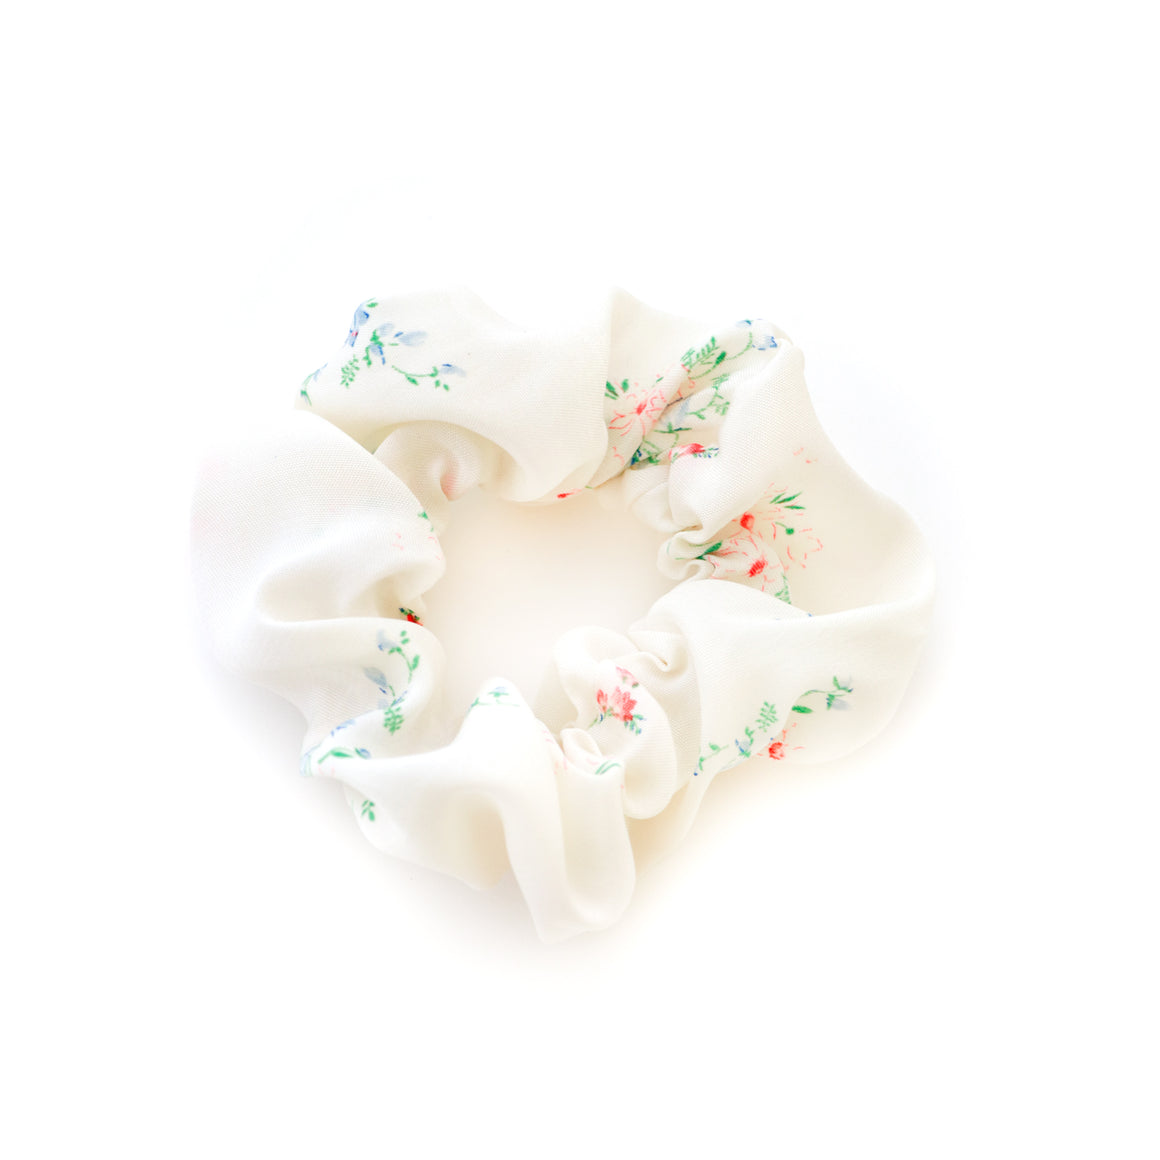 white floral scrunchie made out of vintage fabric from the 1940s